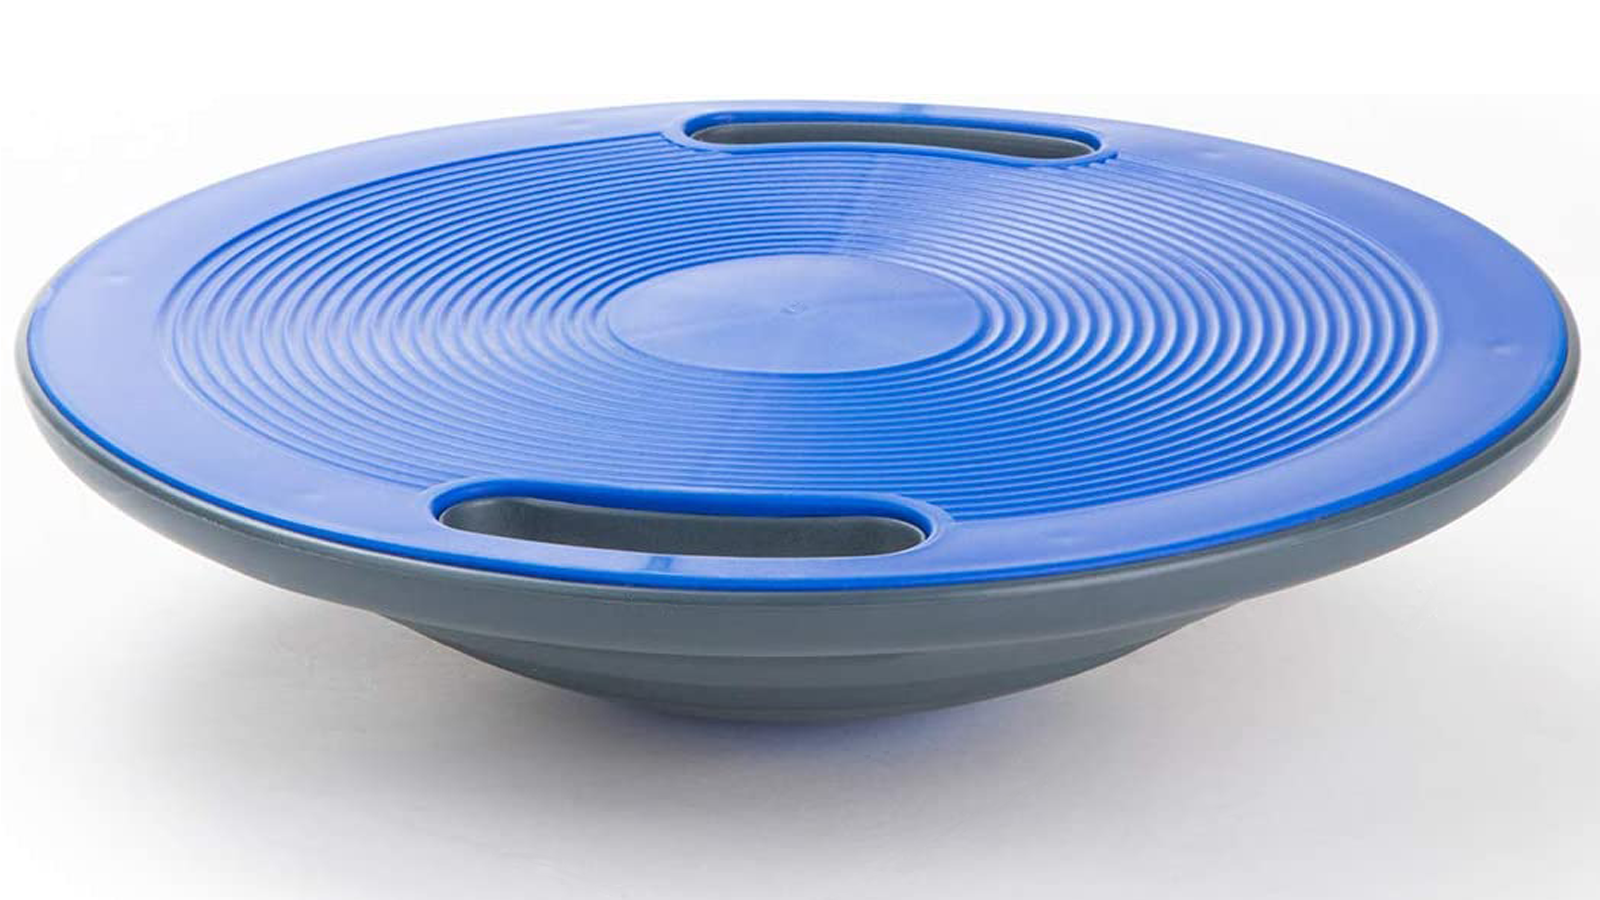 Small wobble balance board with handles